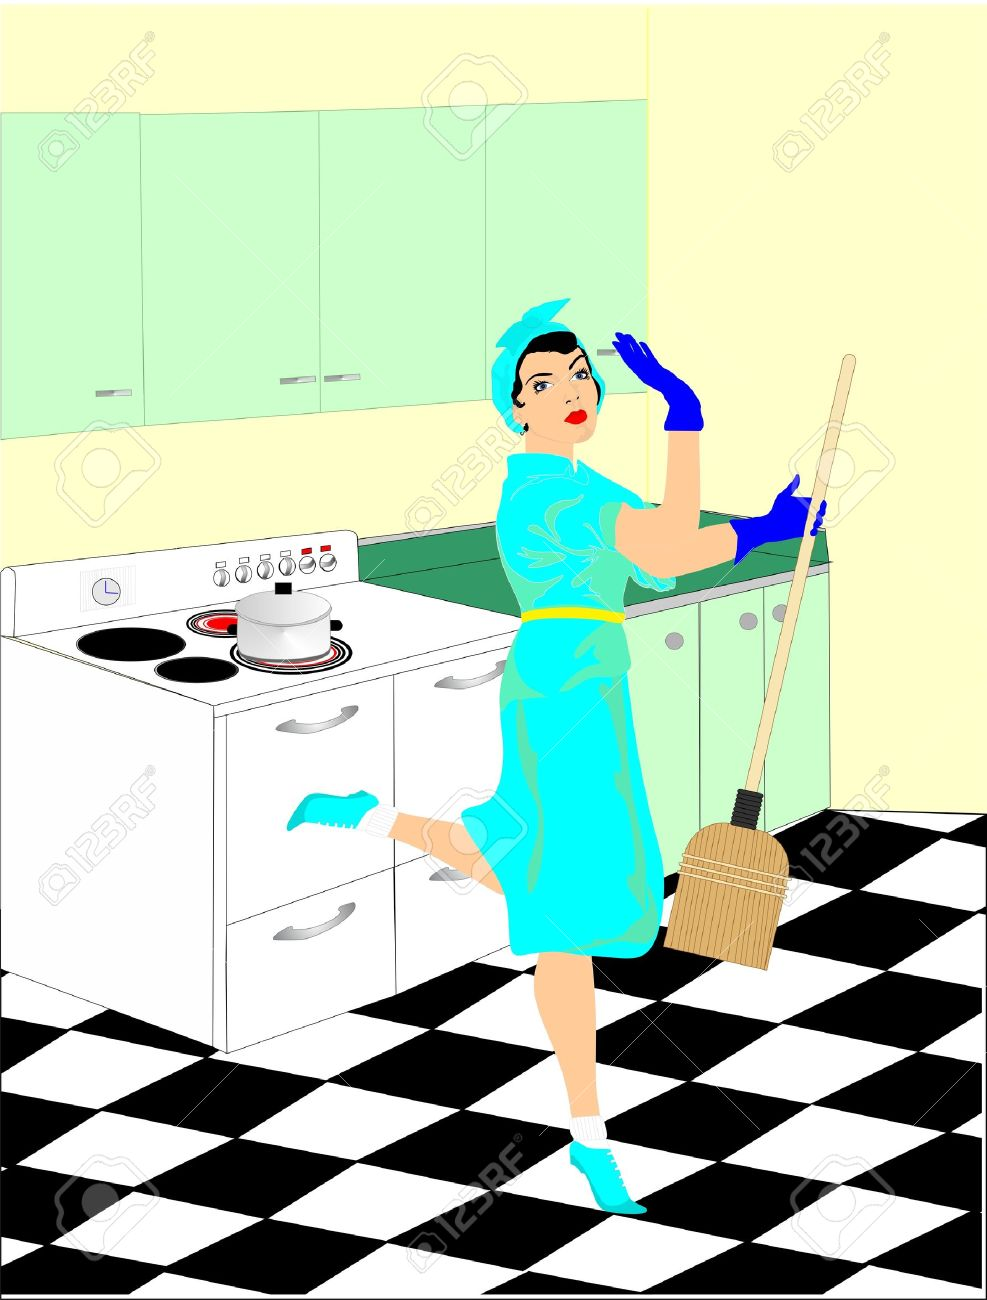 A Women In The 50 S Is Doing Her Household Chores Kitchen Cleaning Up